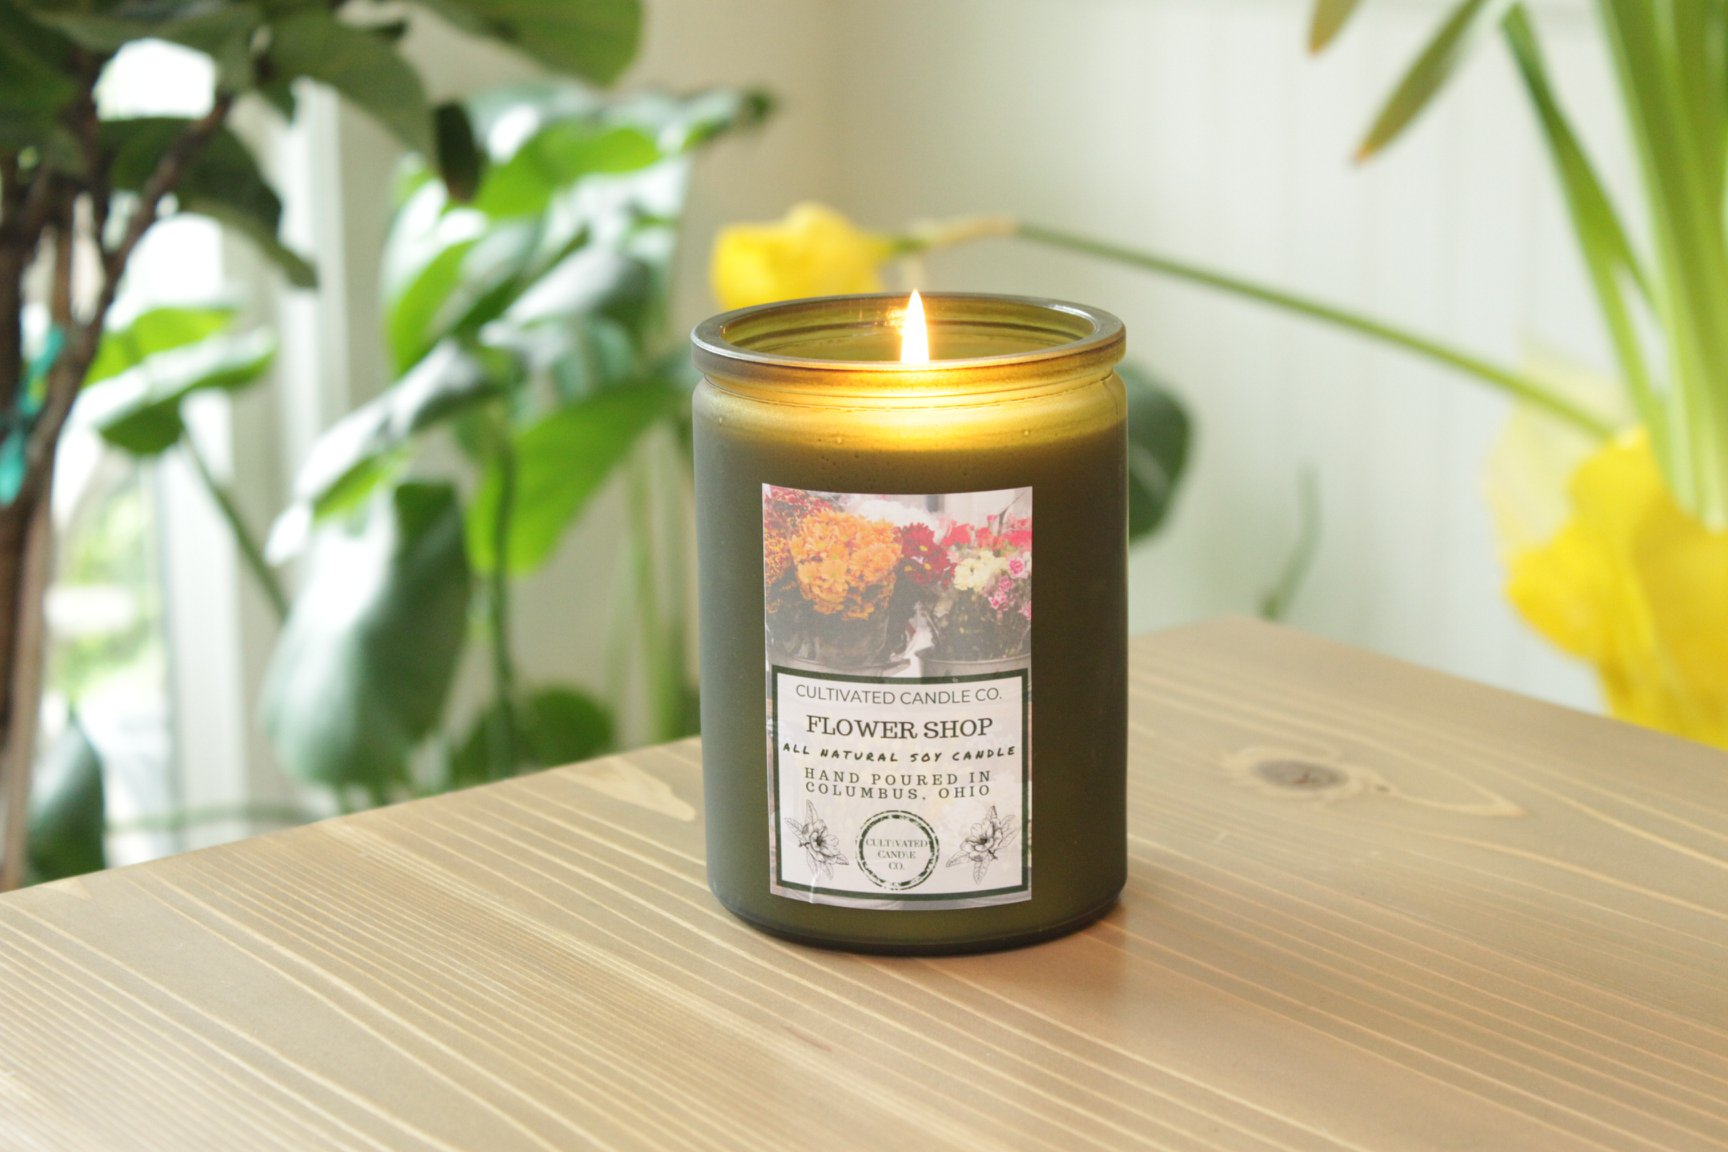 Cultivated Candle Co. Flower Shop Candle, $18